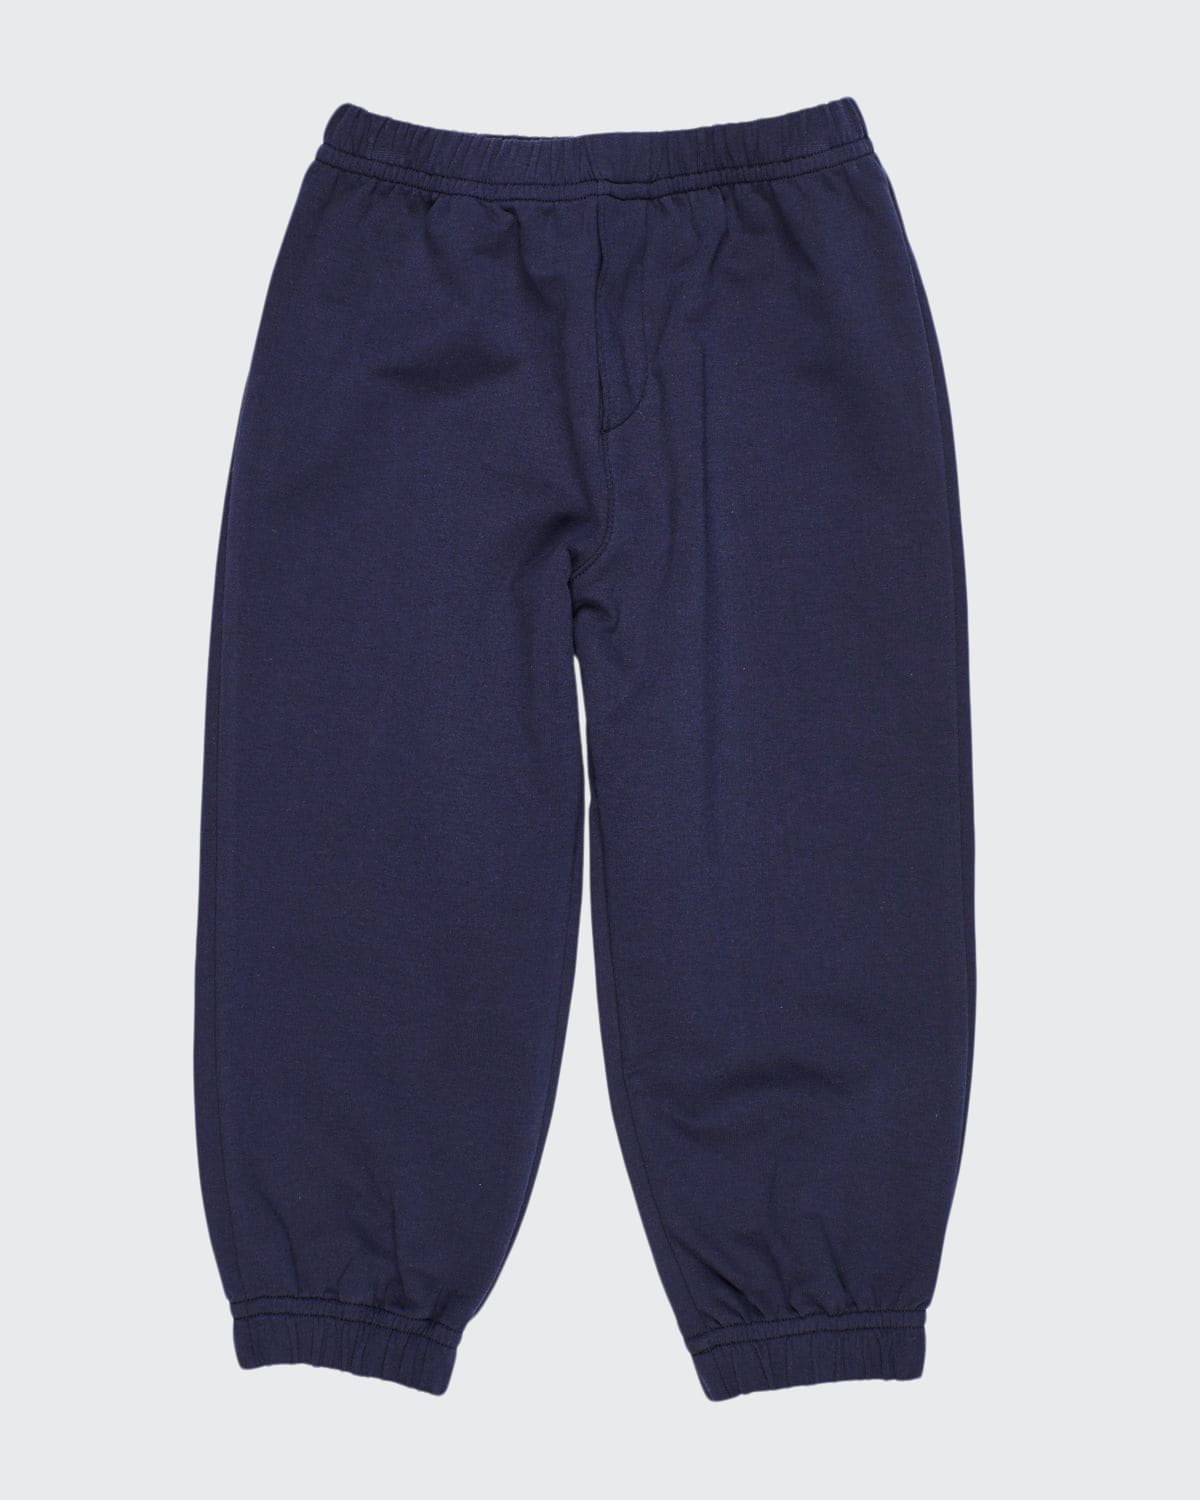 Boy's Navy French Terry Jogger Pants